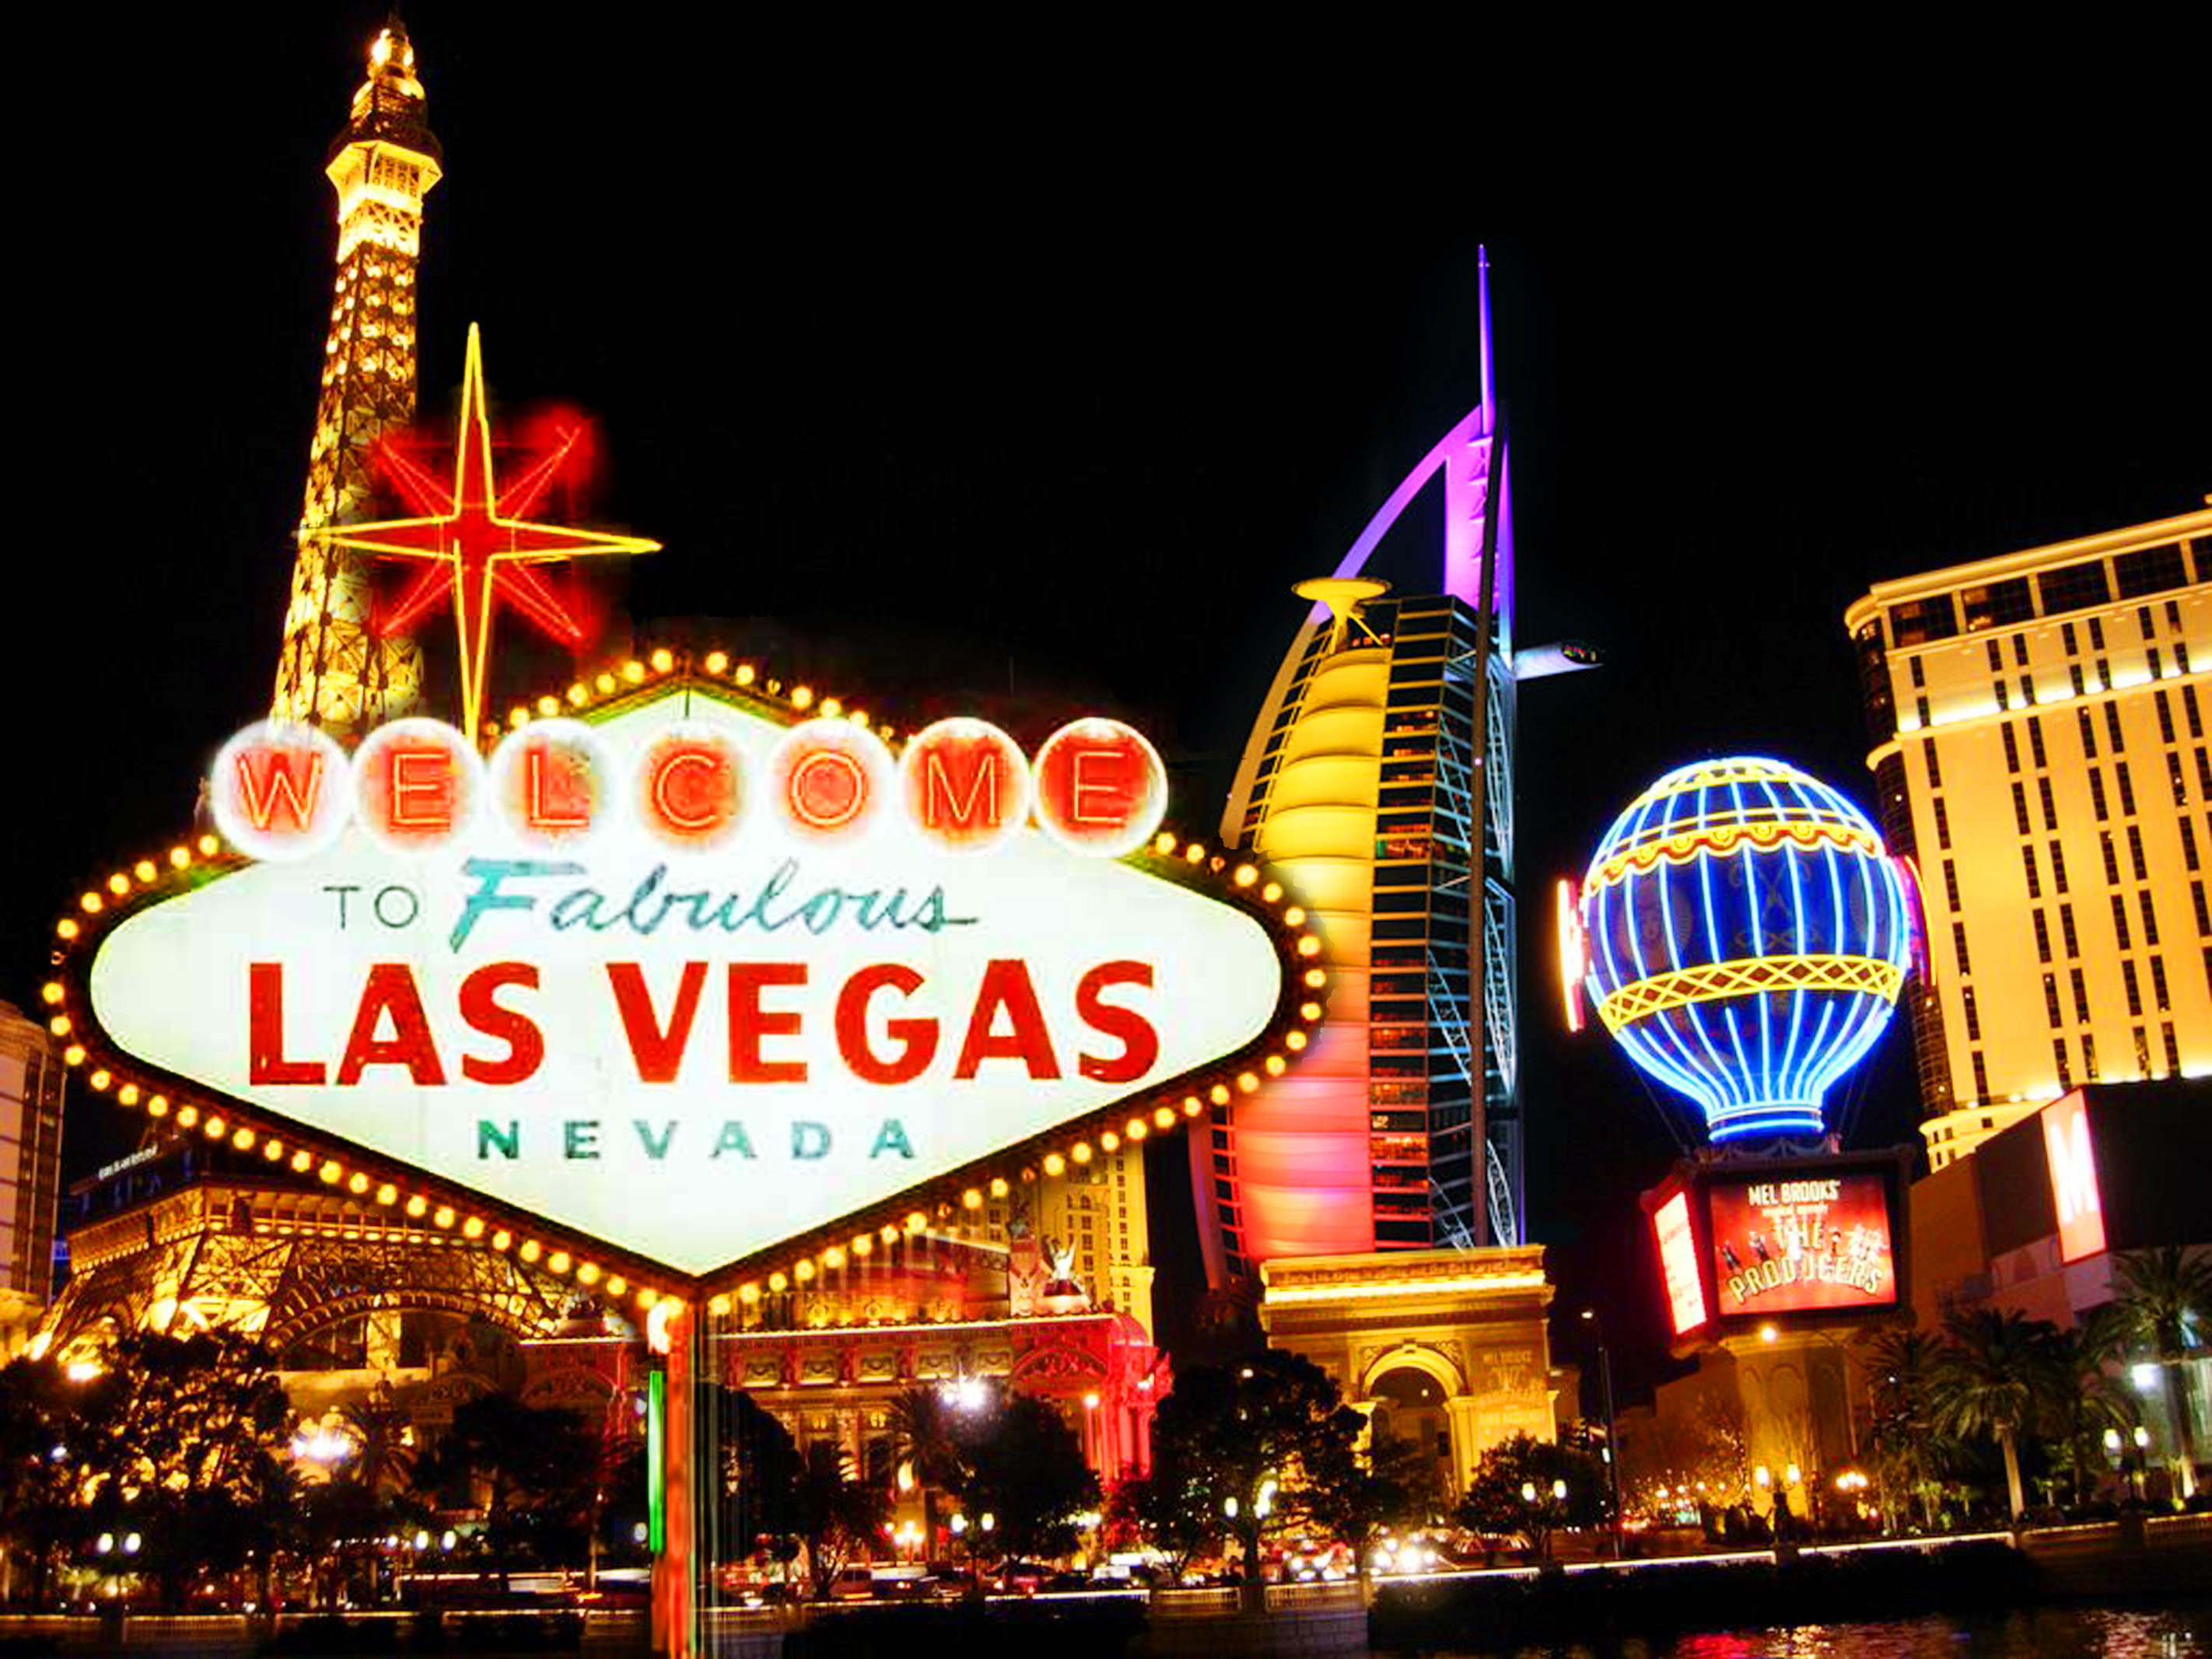 Hotels near Las Vegas, Nevada